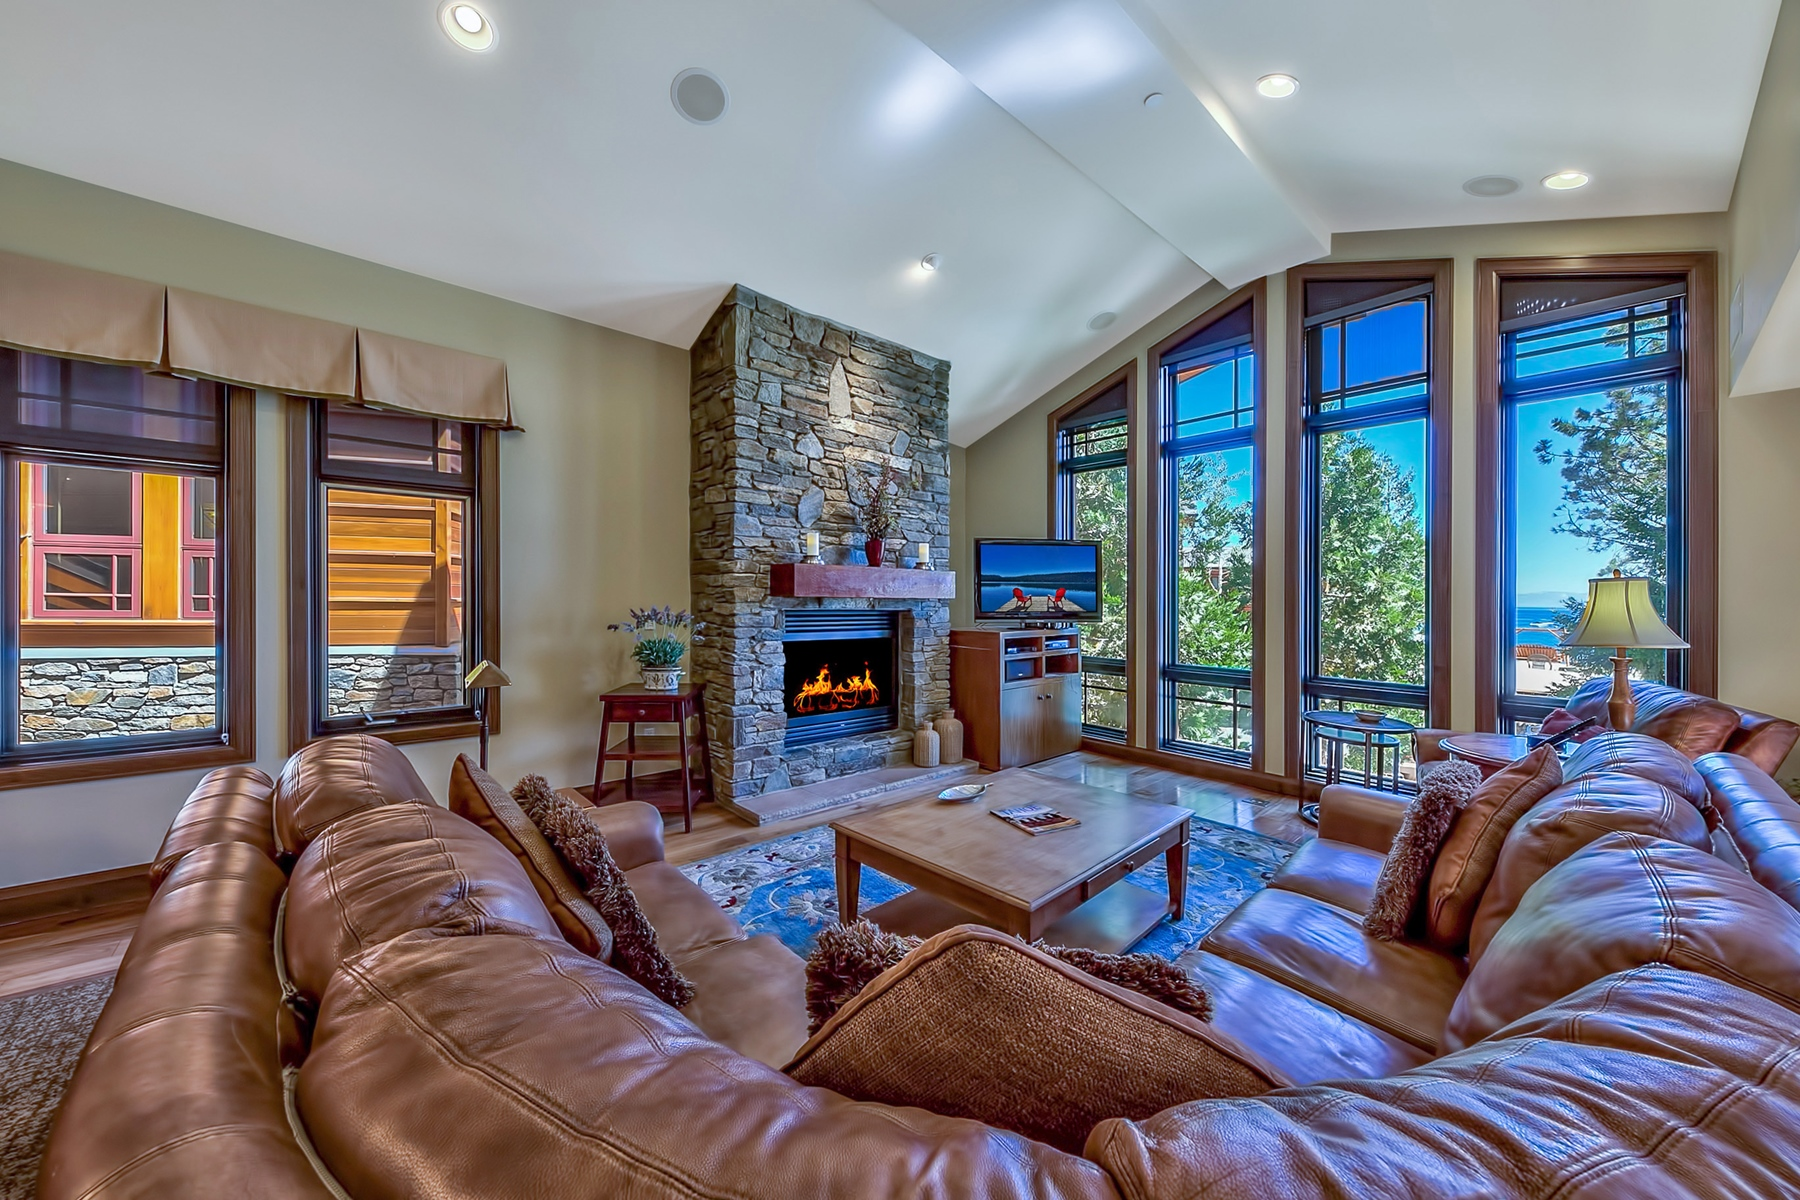 Single Family Home for Active at 6750 North Lake Blvd. #10E, Tahoe Vista, CA 6750 North Lake Blvd. #10E Tahoe Vista, California 96148 United States